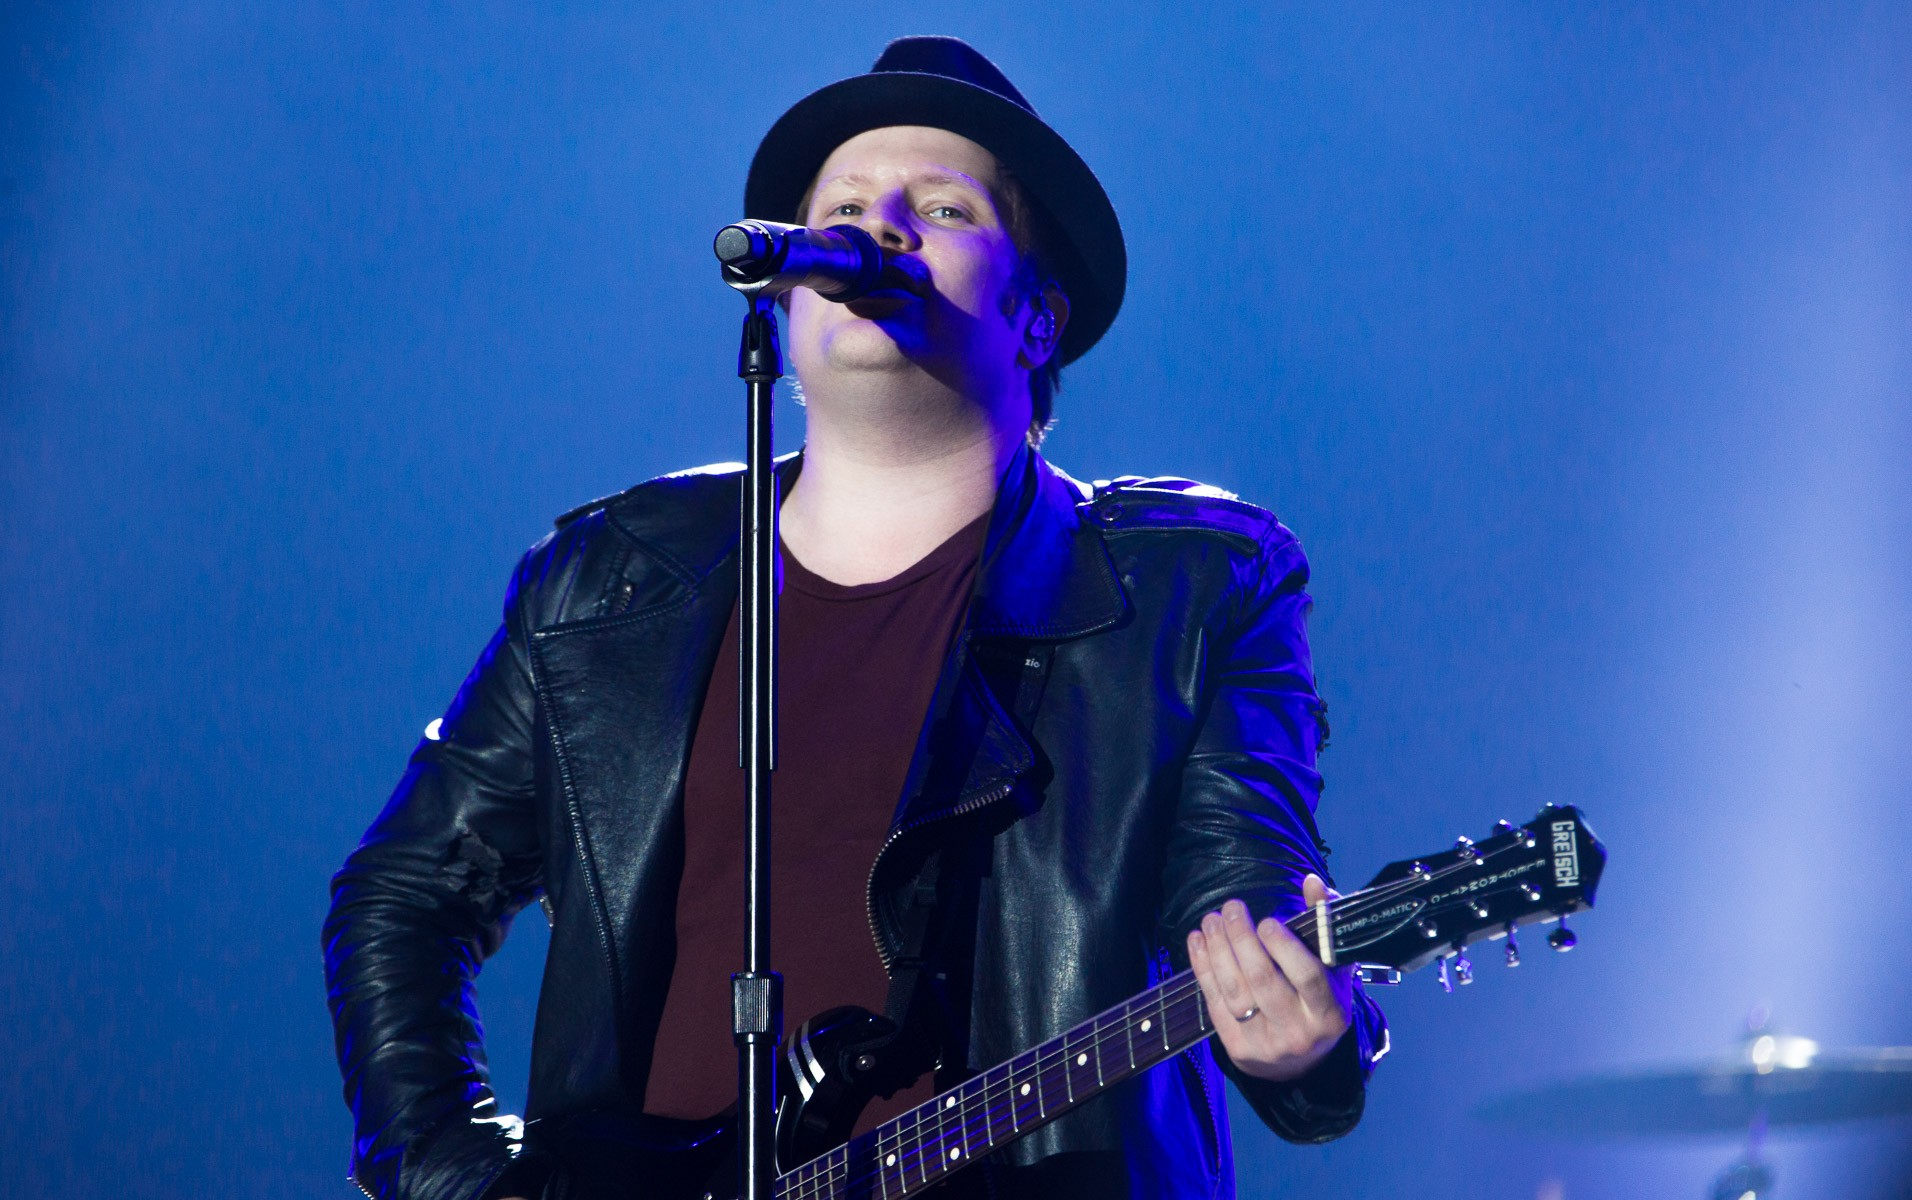 21-09 - MUNDO - Fall out boy - Rock in Rio 2017 (Foto: andr Bittencourt)